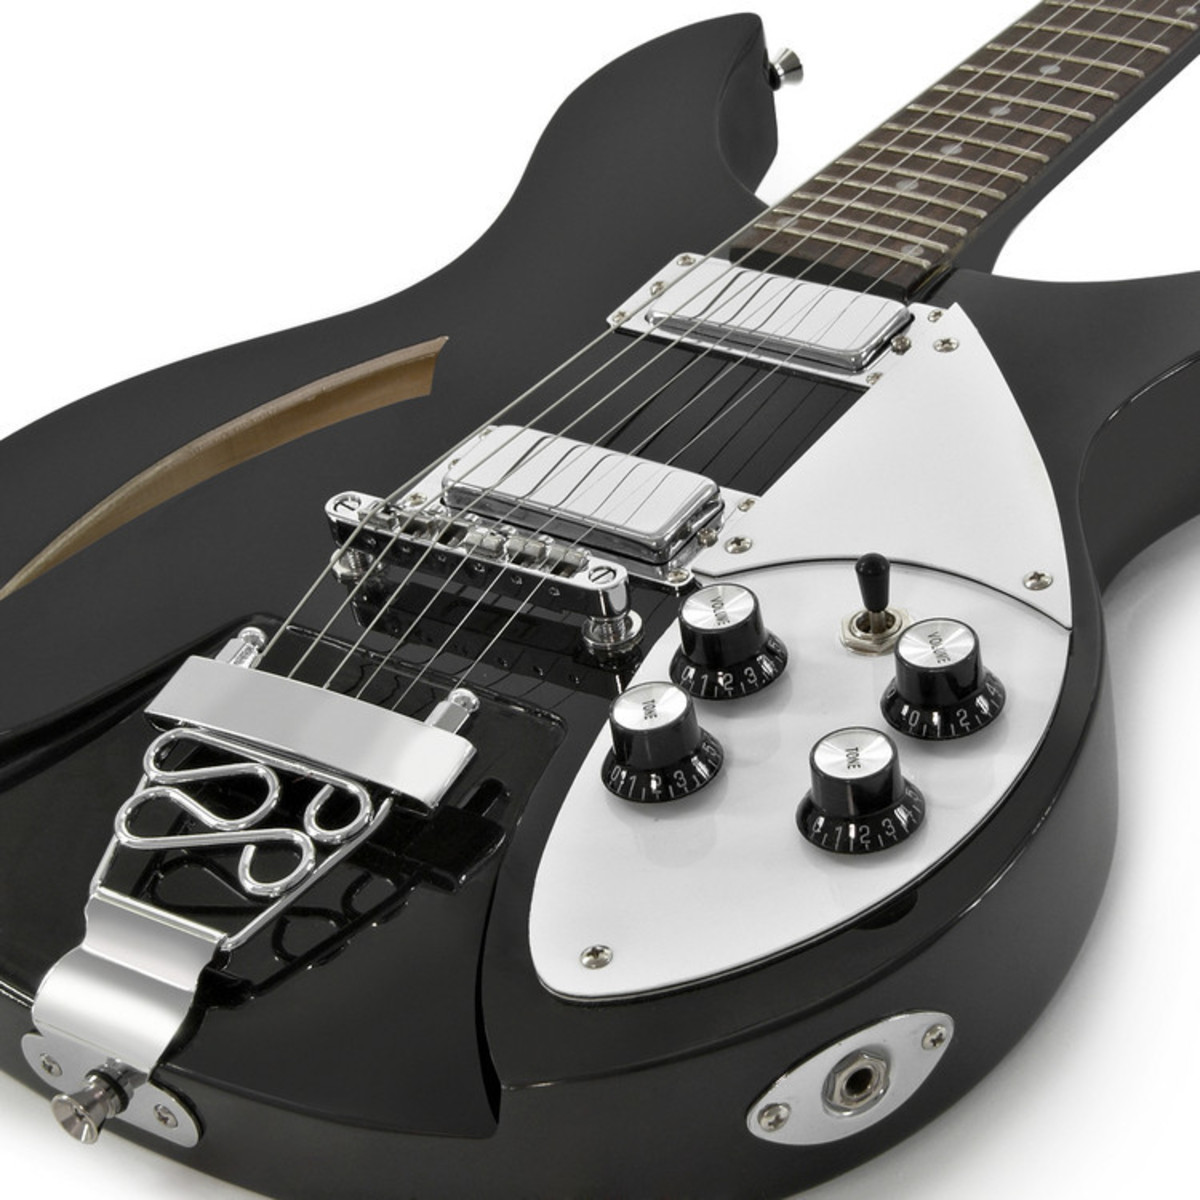 rocksmith xbox 360 santa ana electric guitar black at gear4music. Black Bedroom Furniture Sets. Home Design Ideas